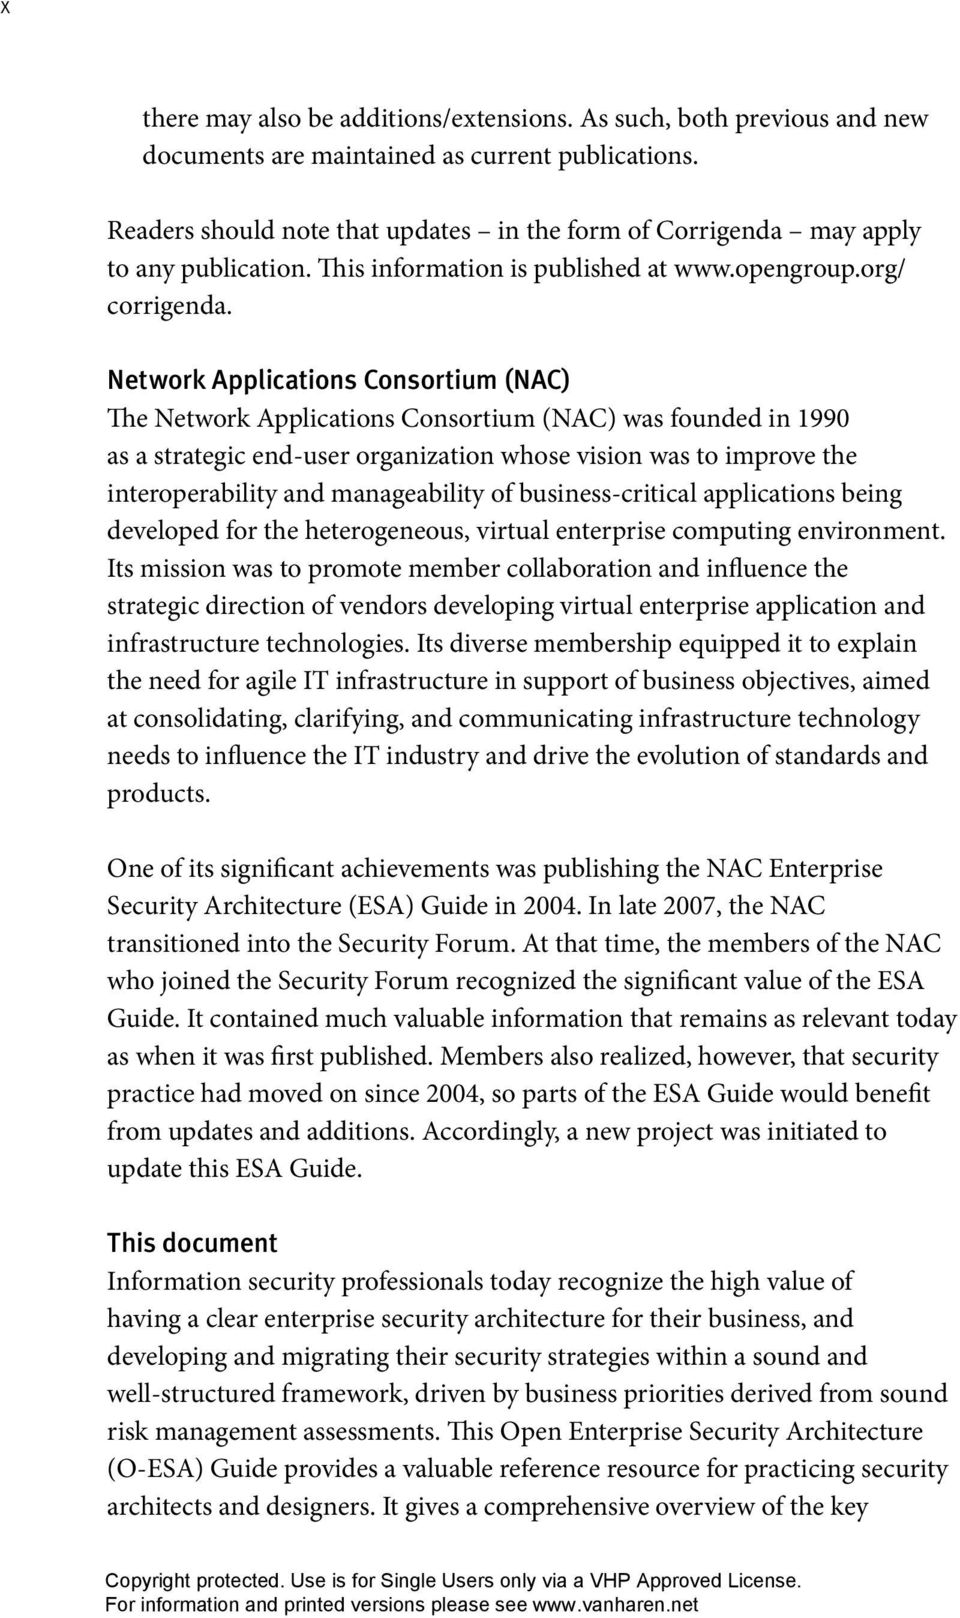 Network Applications Consortium (NAC) The Network Applications Consortium (NAC) was founded in 1990 as a strategic end-user organization whose vision was to improve the interoperability and